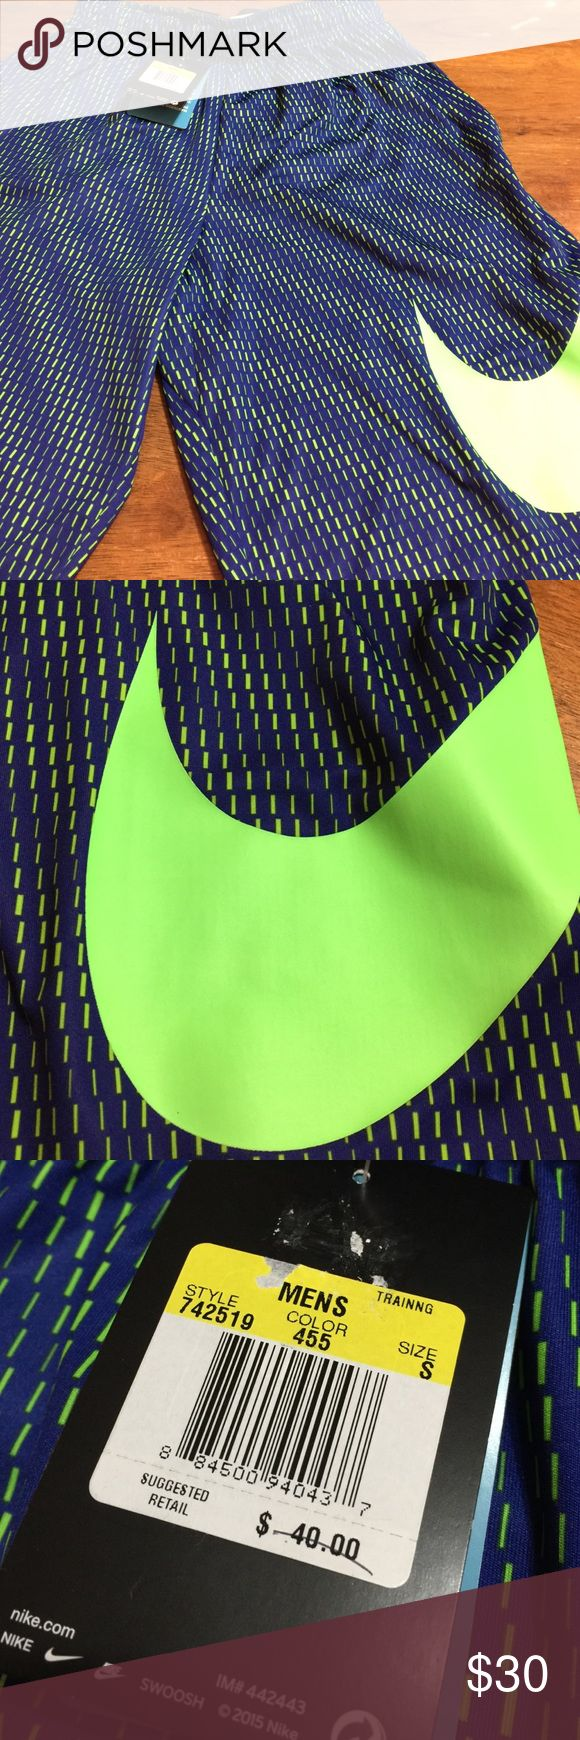 Nwt men's small Nike basketball shorts Nwt men's small Nike basketball shorts. Royal blue and neon green. Nike Shorts Athletic